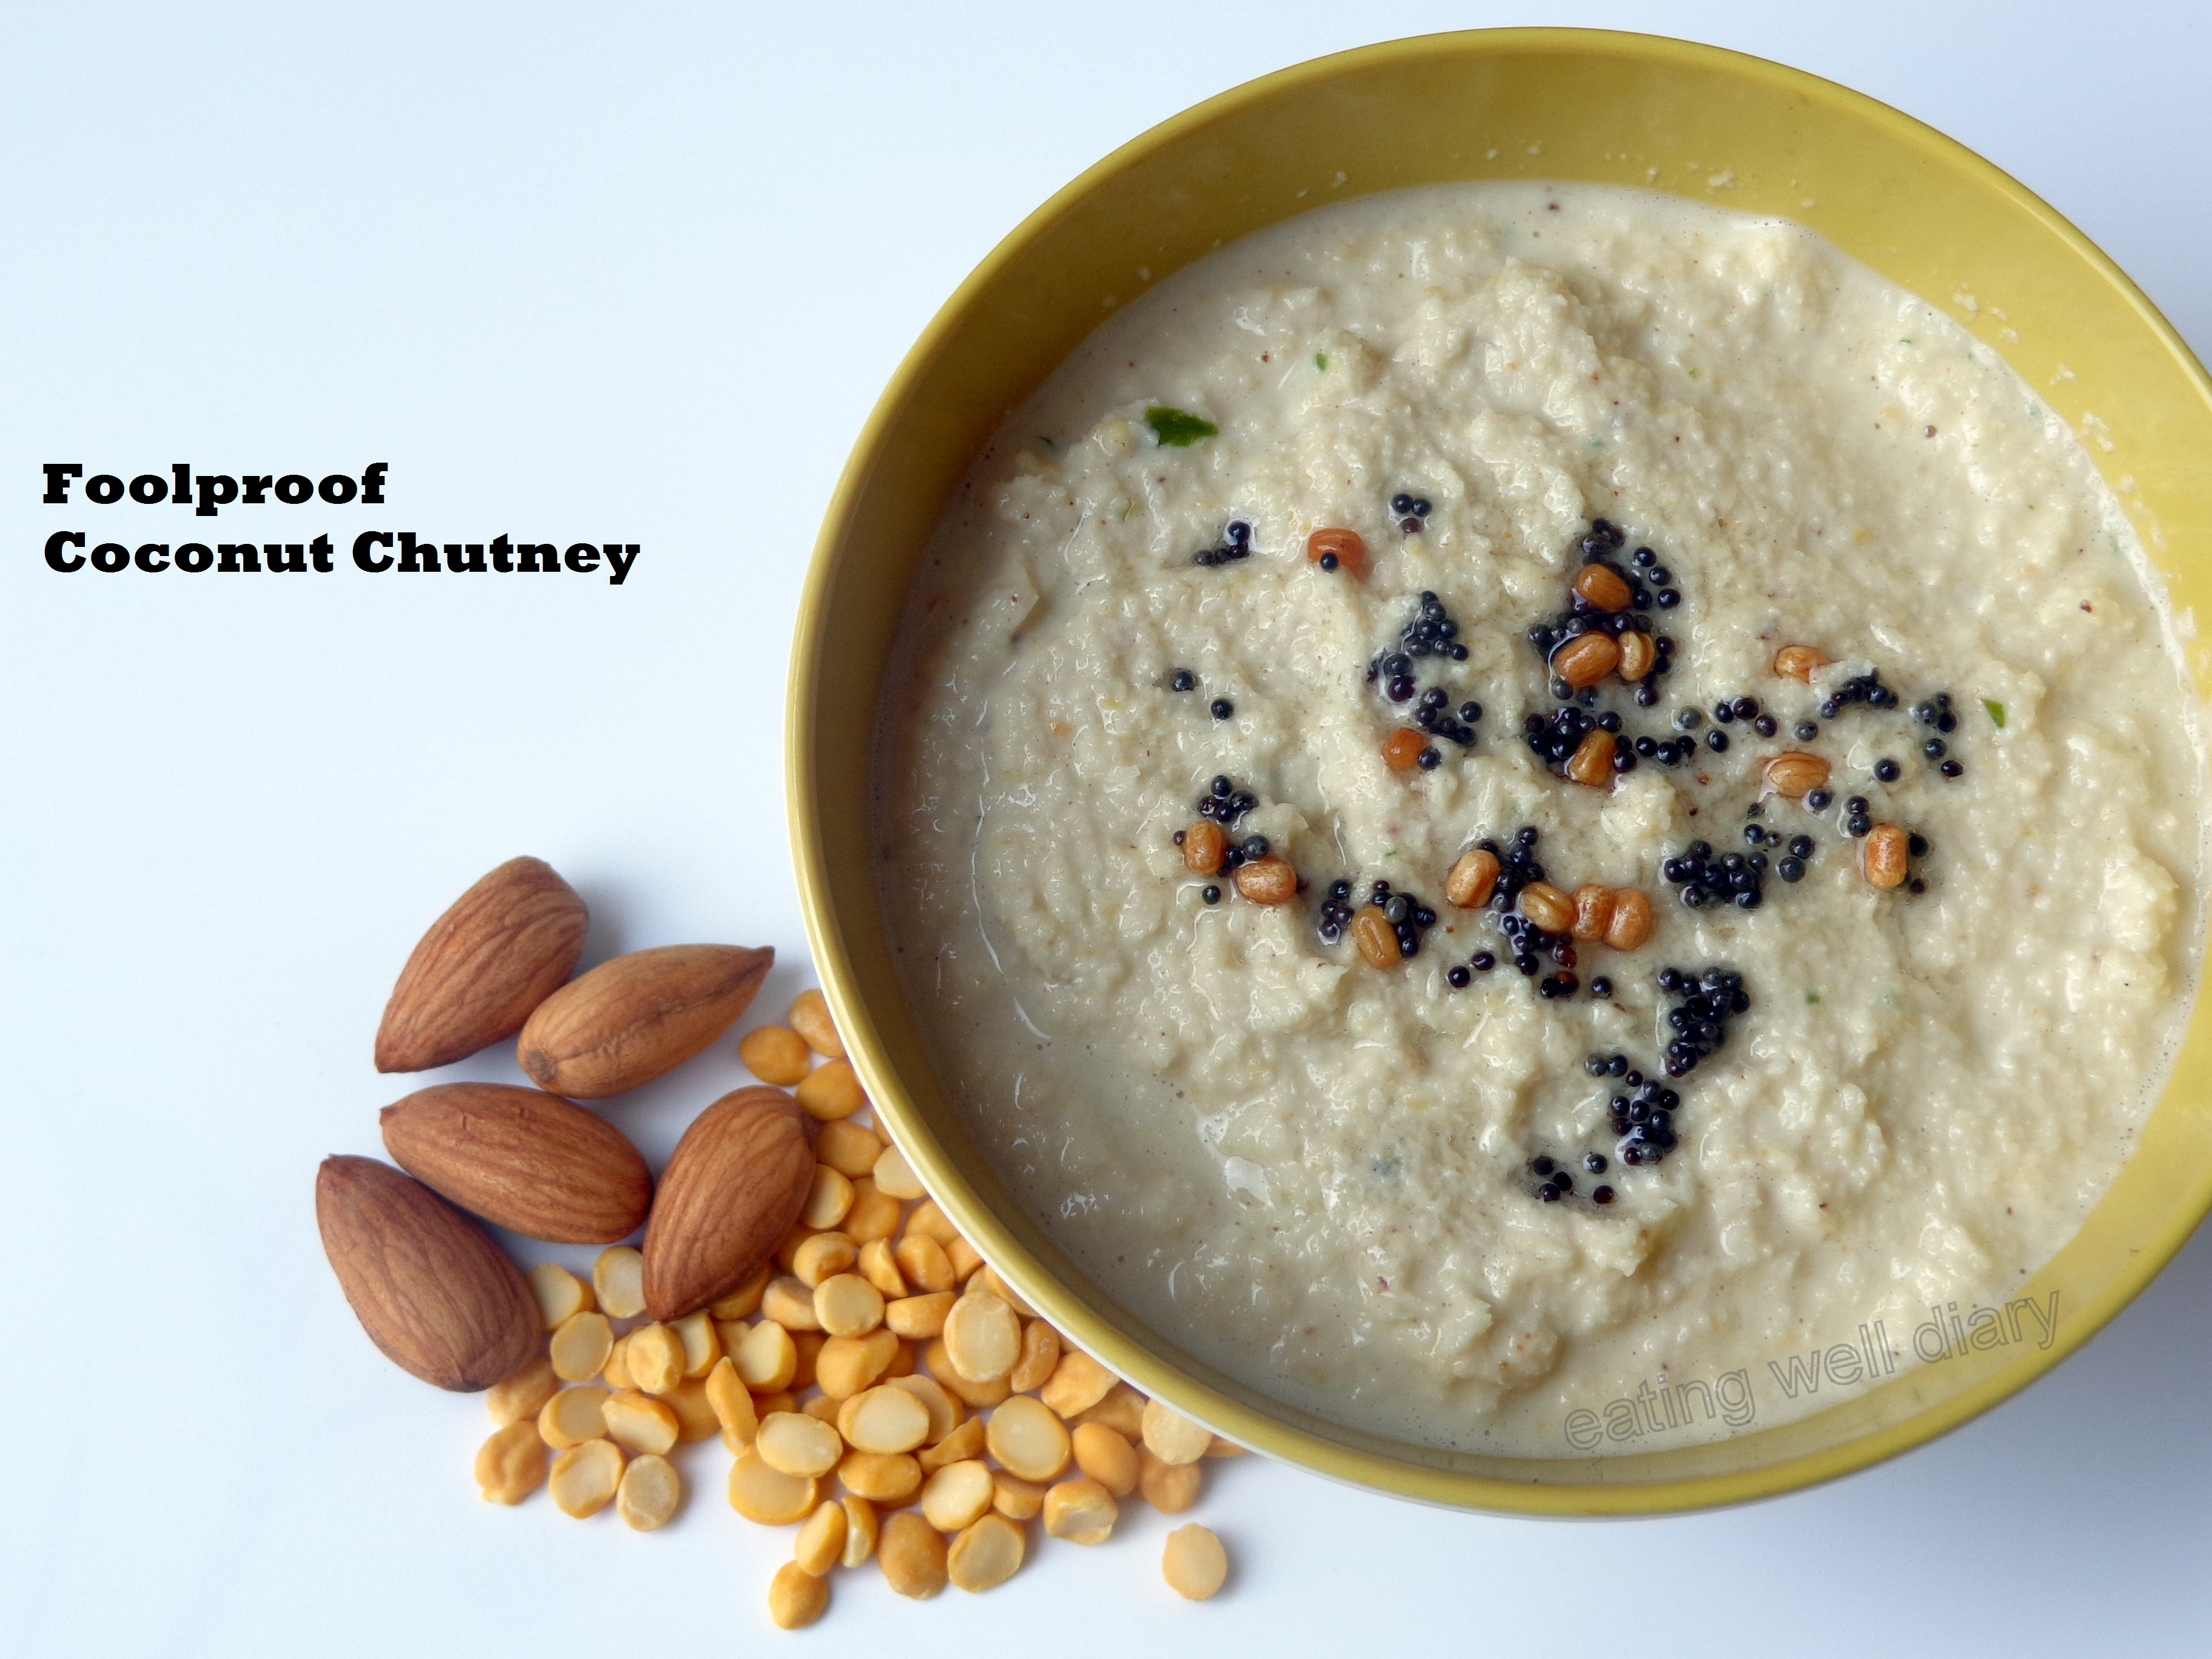 Foolproof coconut chutney- Grandmother's recipe